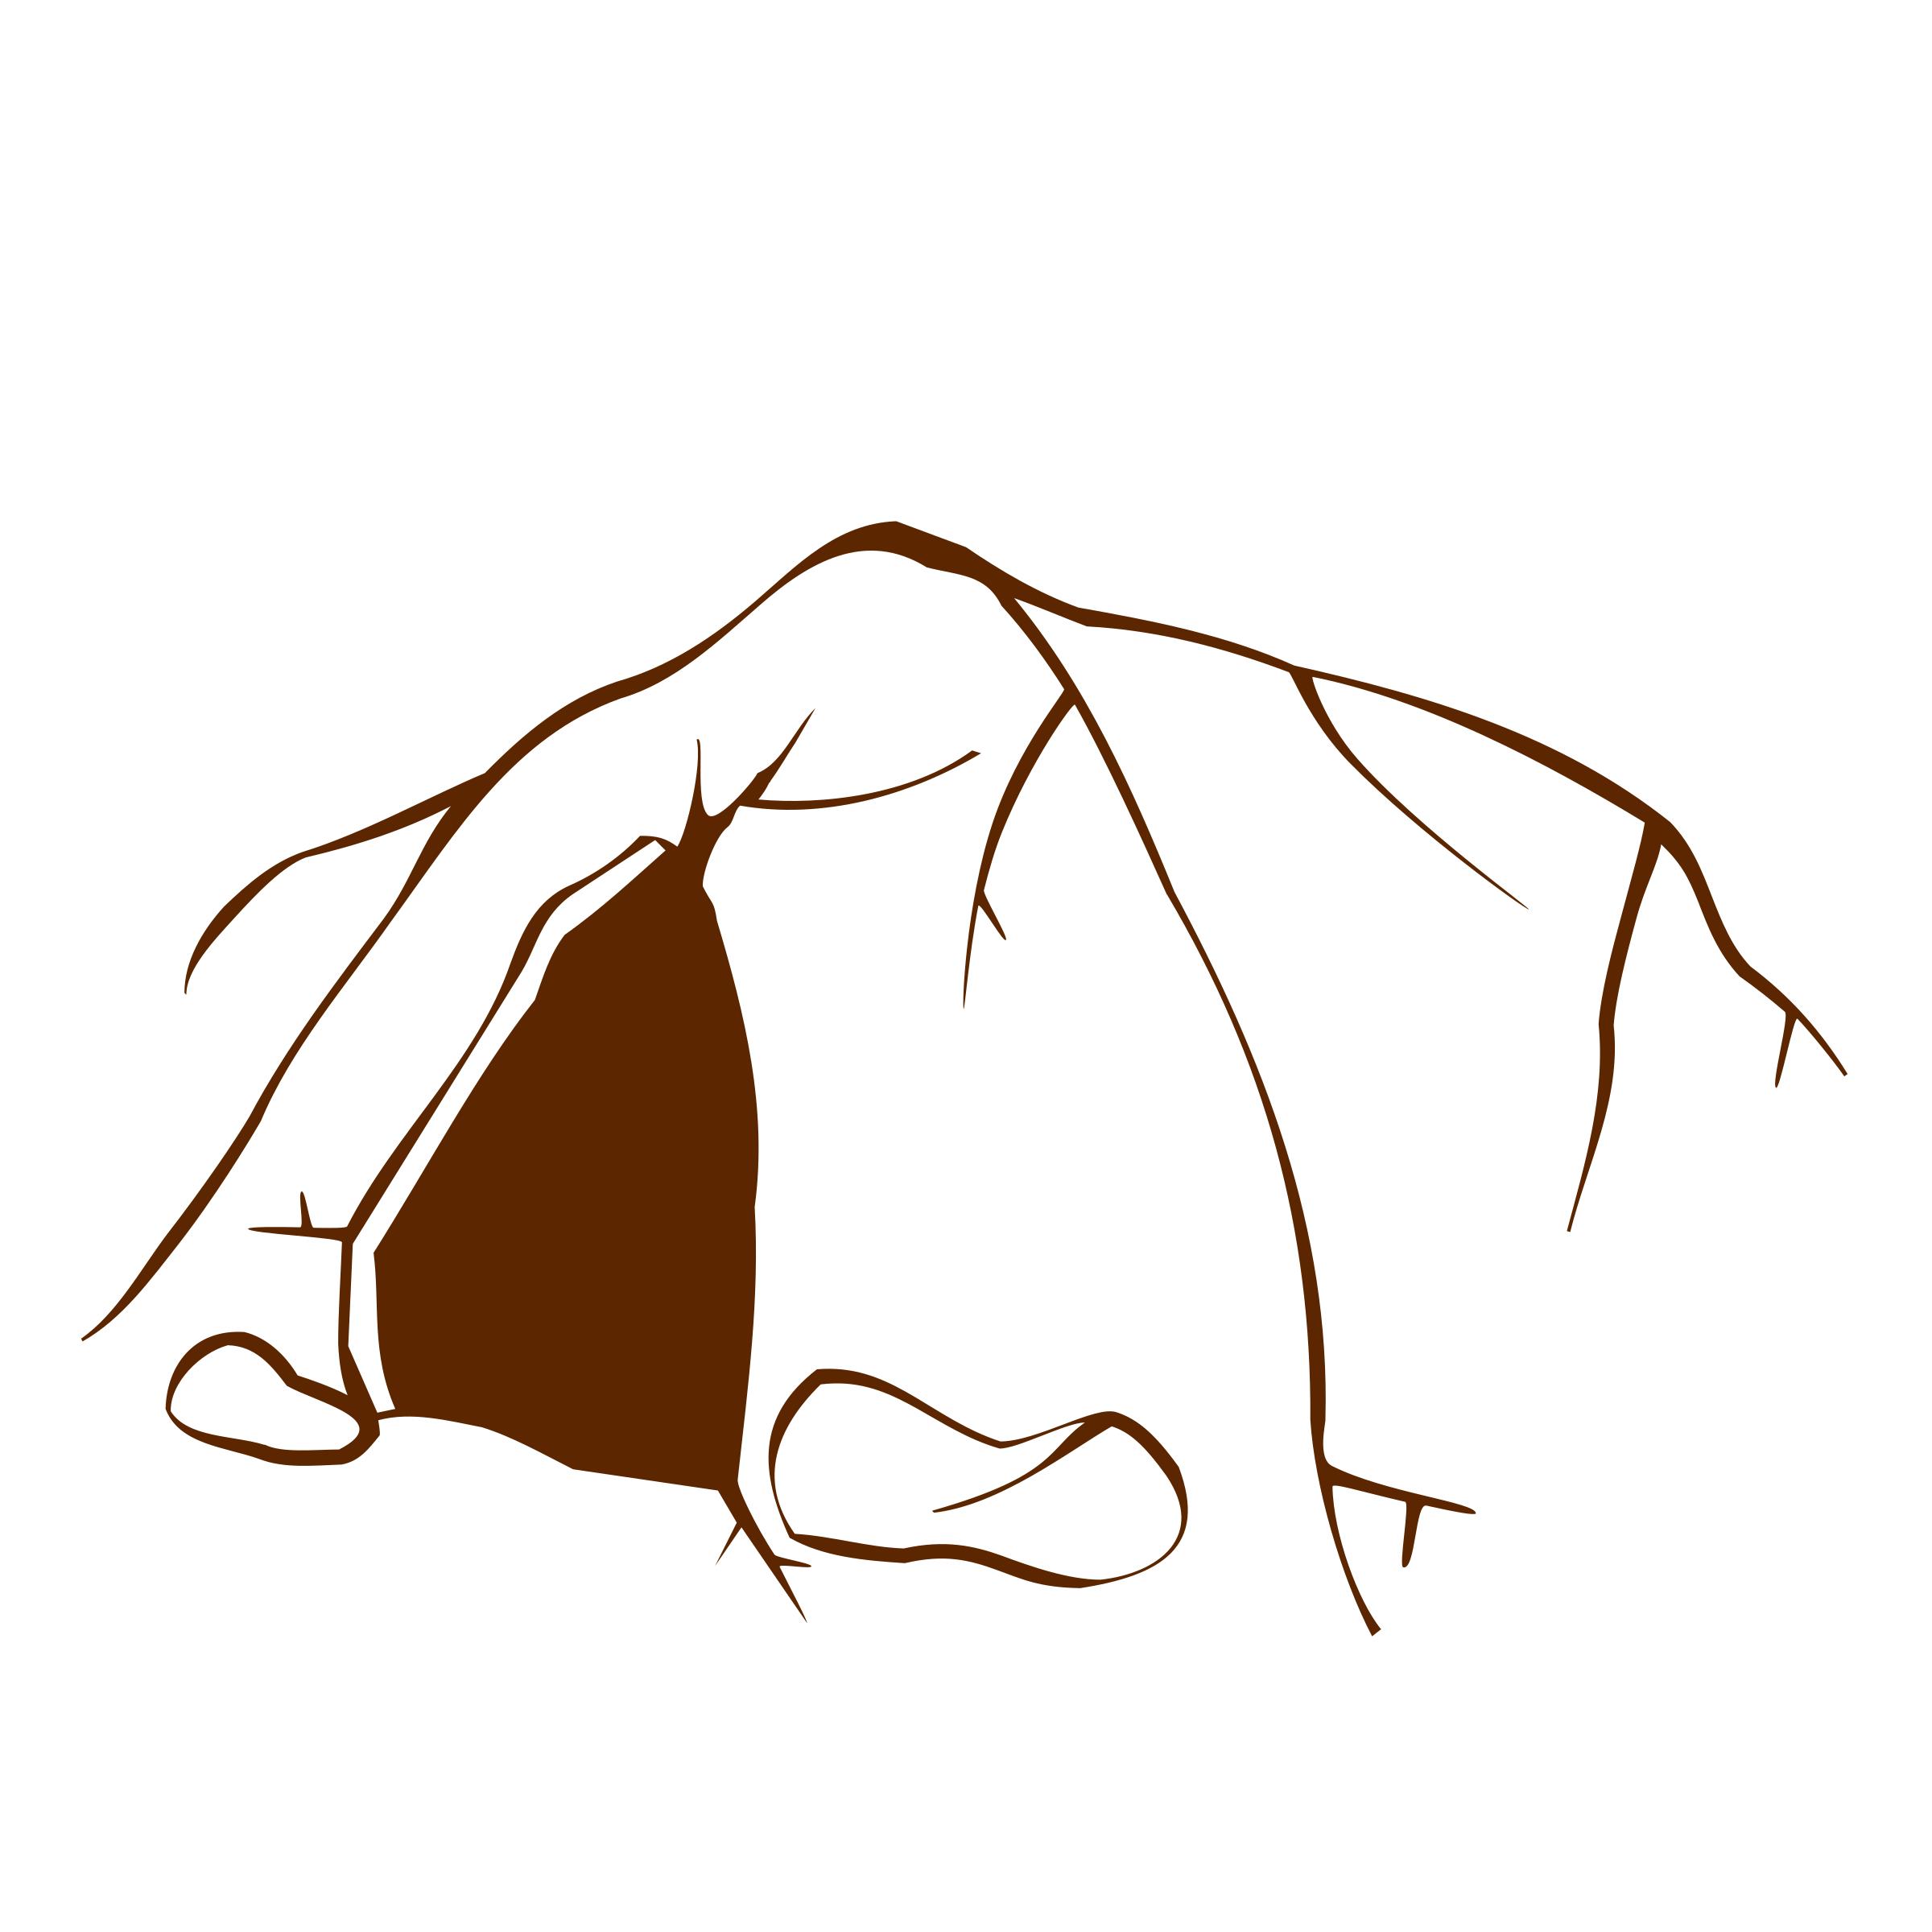 Cave clipart icon Symbols RPG map Cave 2